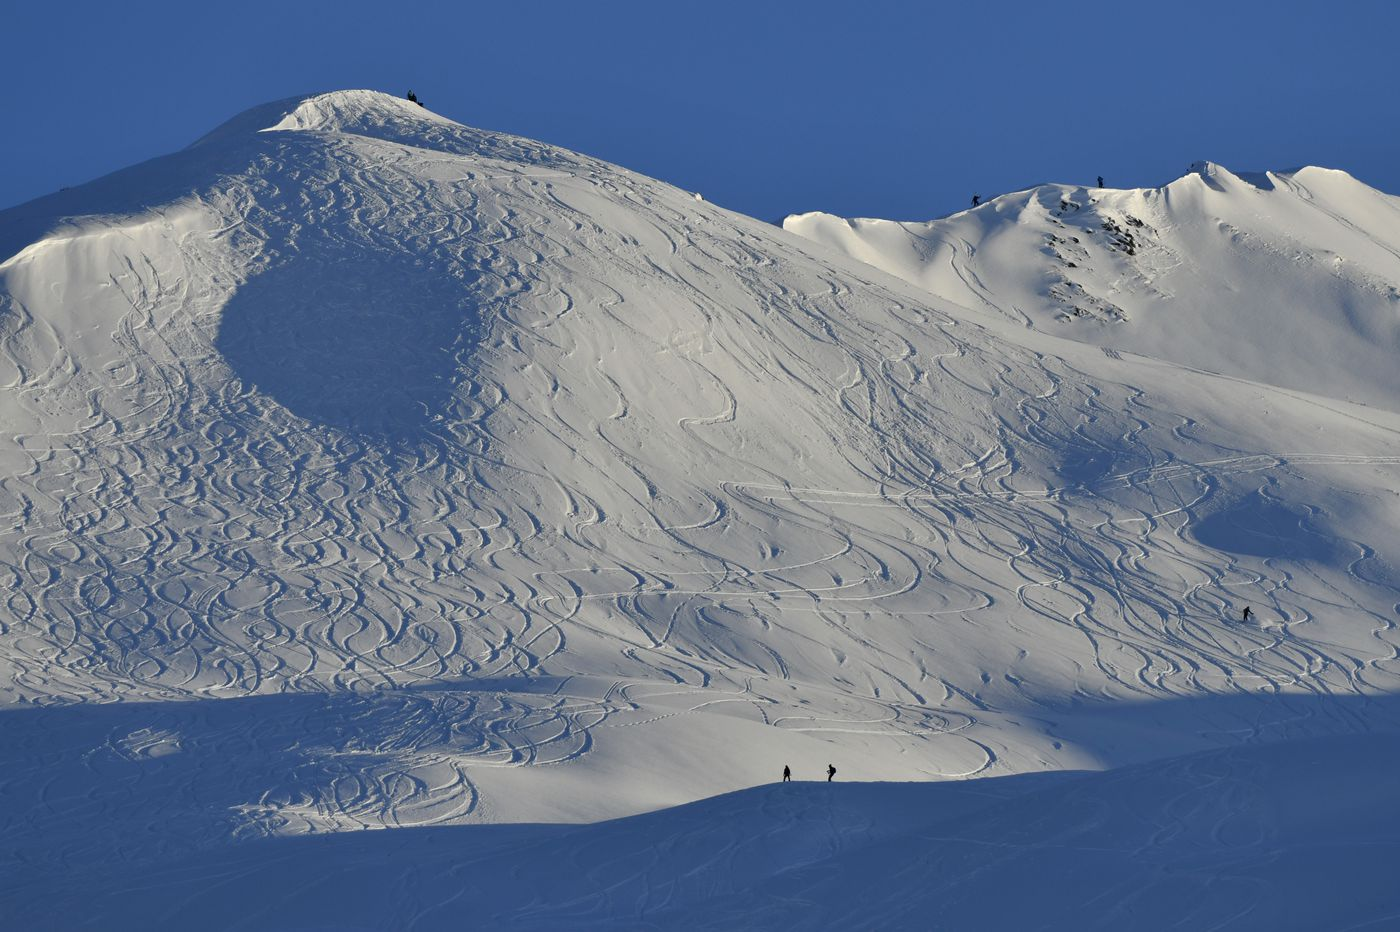 Lines from backcountry skiers leave patterns in slopes along the Tincan Peak ridge line on December 31, 2020. (Marc Lester / ADN)